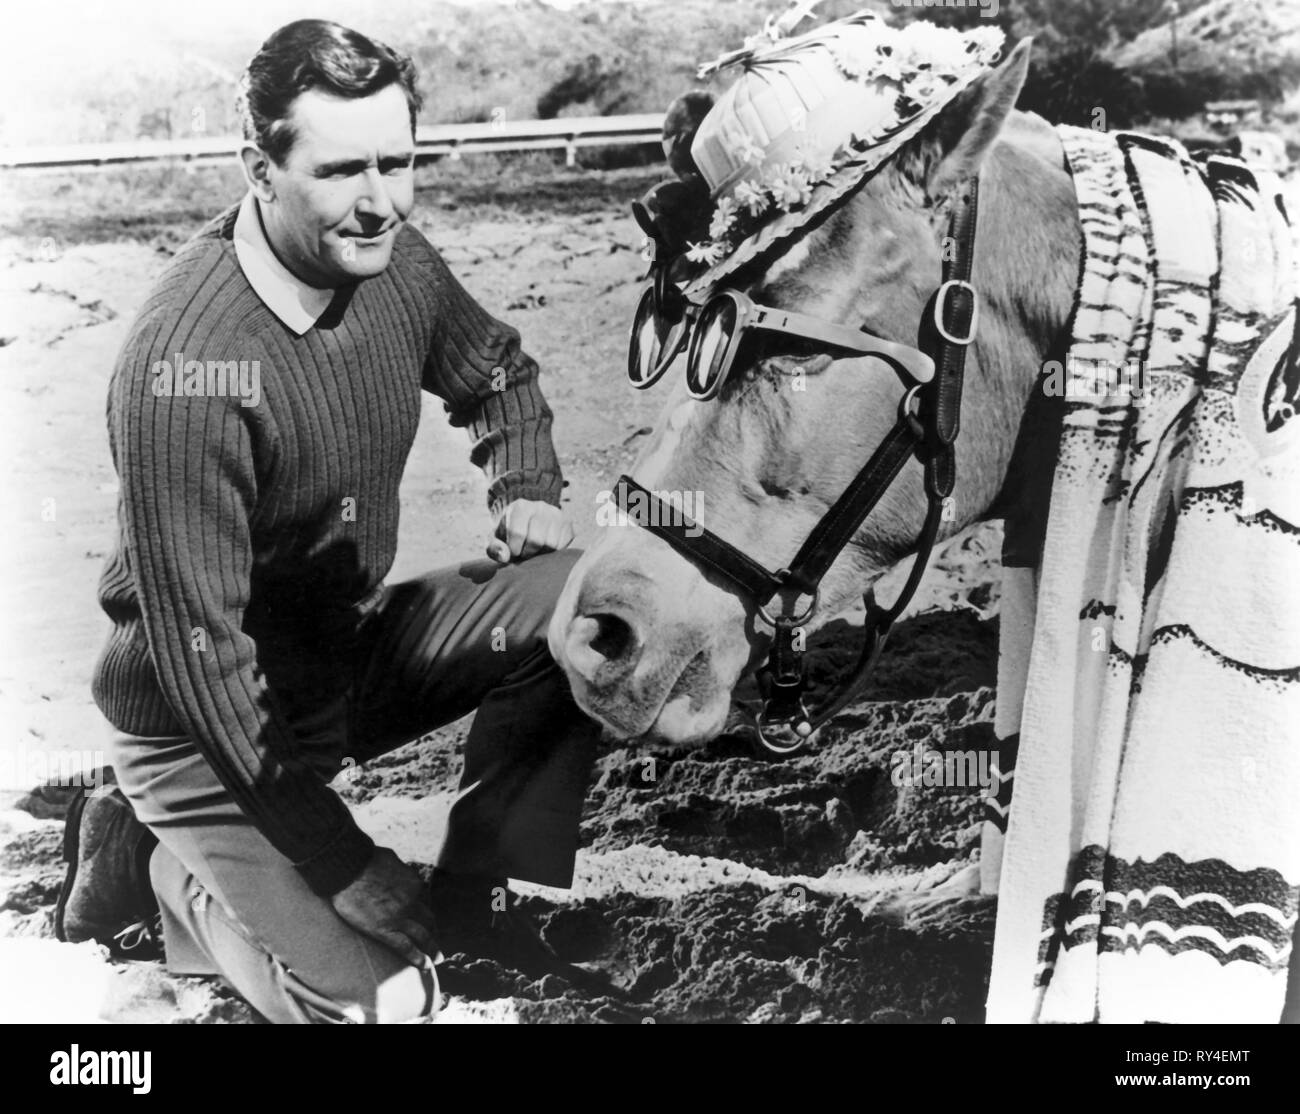 ALAN YOUNG,MISTER ED, MISTER ED, 1961 - Stock Image